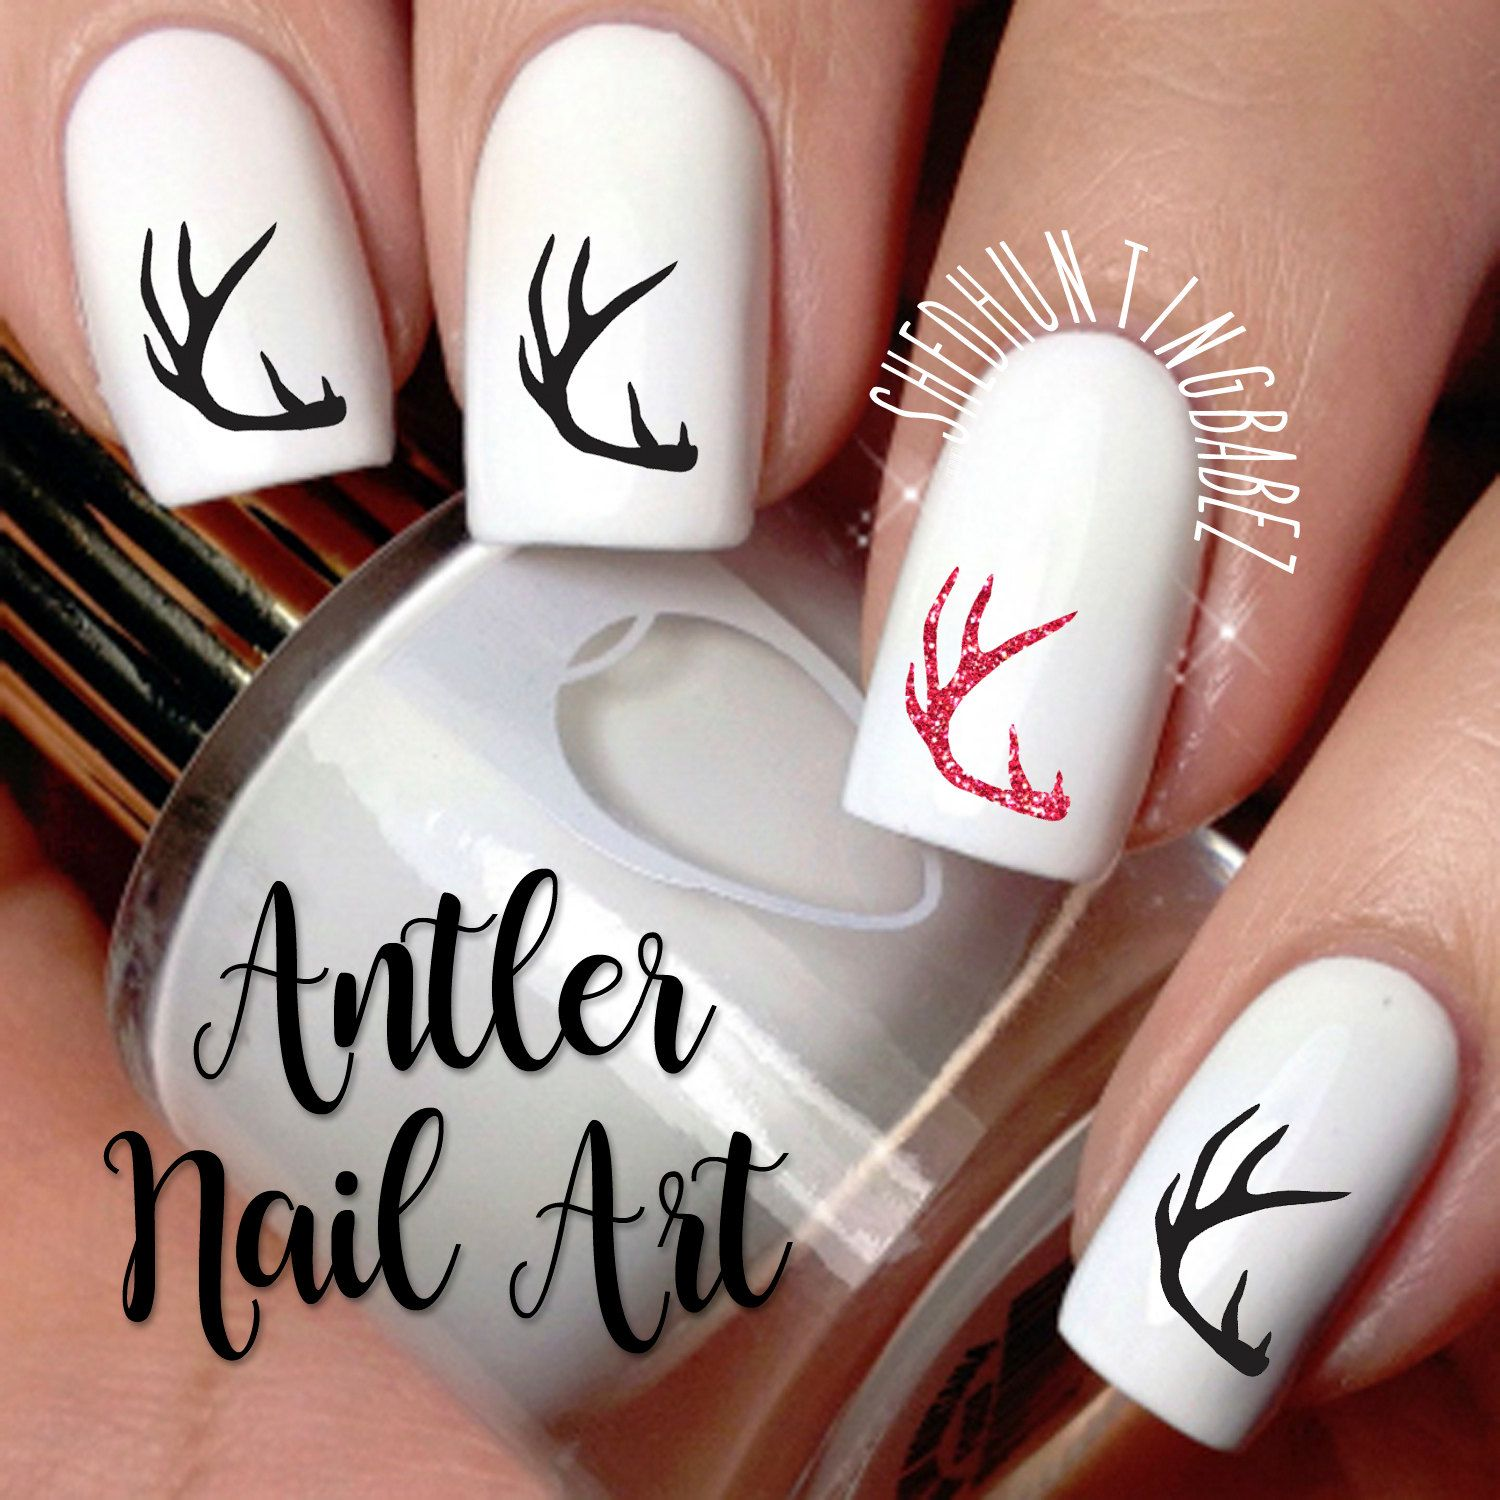 Deer Antler Nail Art Decals Girls That Hunt Fingernail Stickers Glitter Antler Nail Designs By Shedhuntingbabez On Etsy Hunting Nails Deer Nails Camo Nails